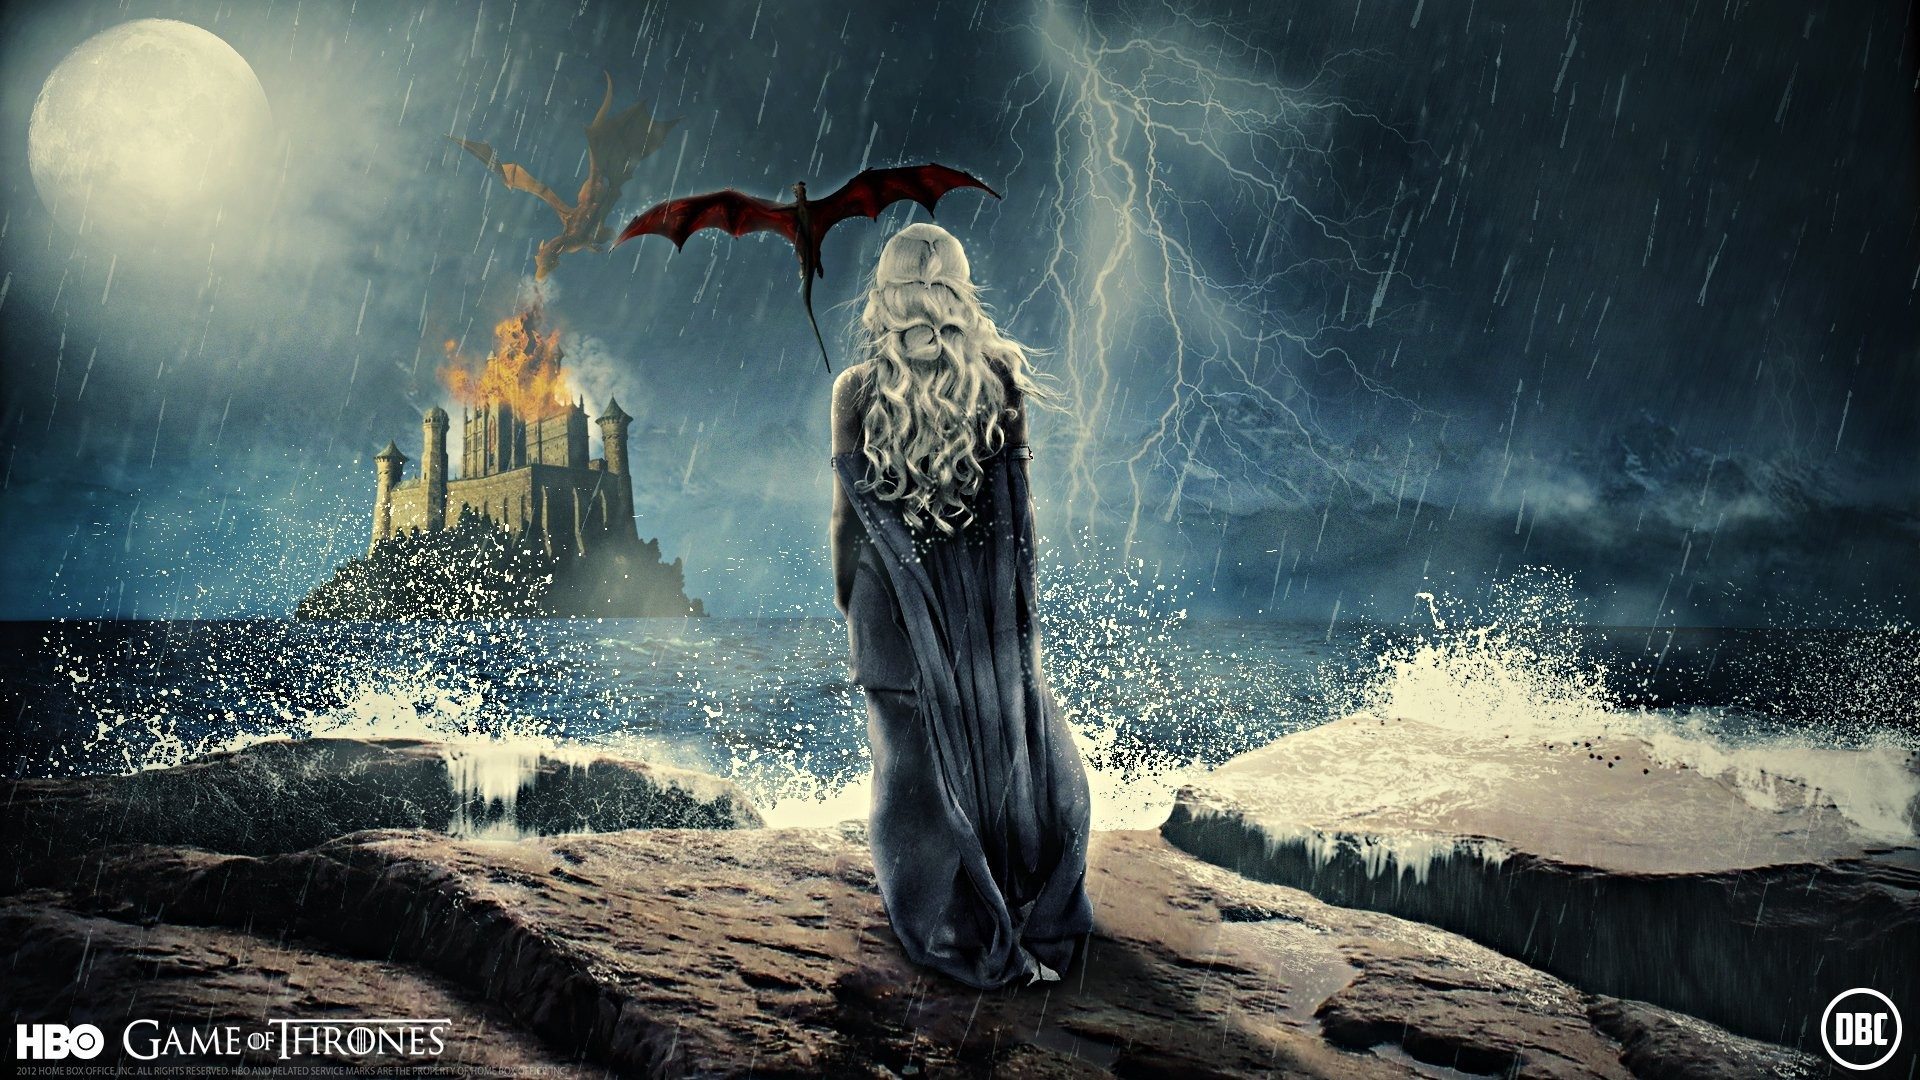 1920x1080 tv series daenerys targaryen games thrones spin girl dragon wings flight  castle fortress fire the storm